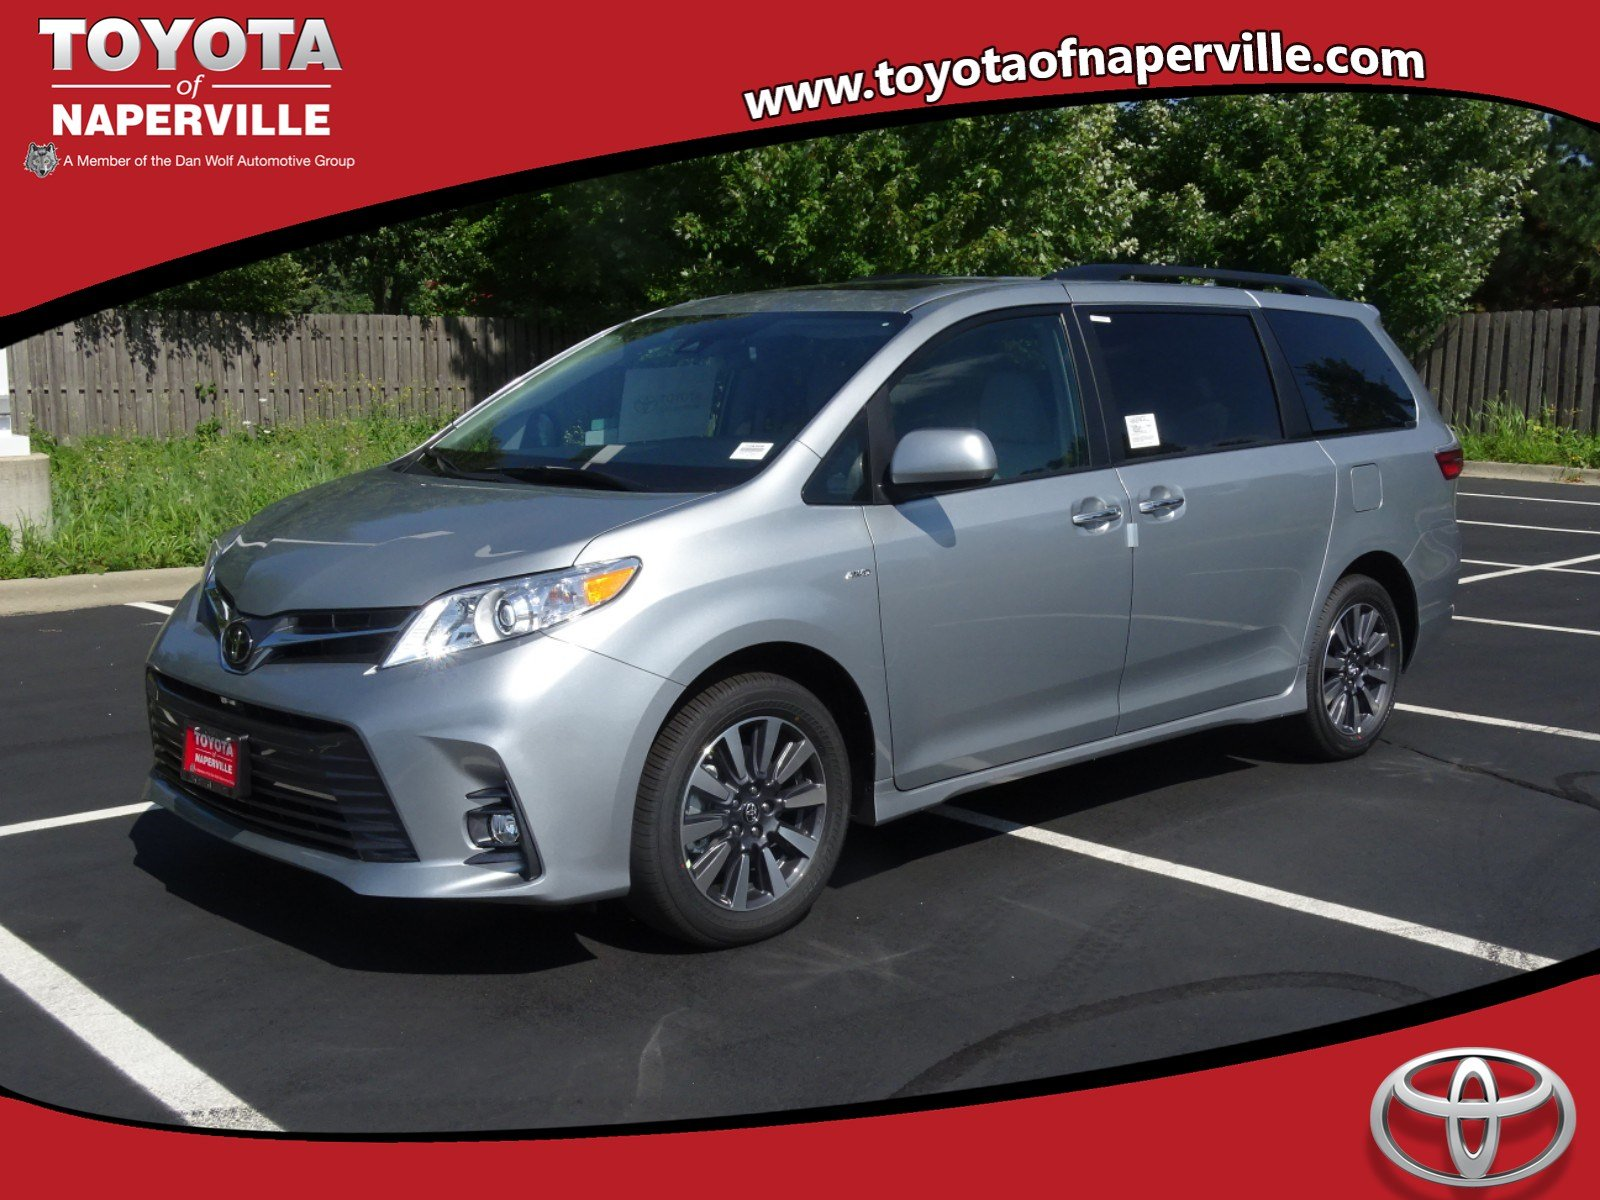 Toyota Sienna Service Manual: Lost Communication with Radar Sensor